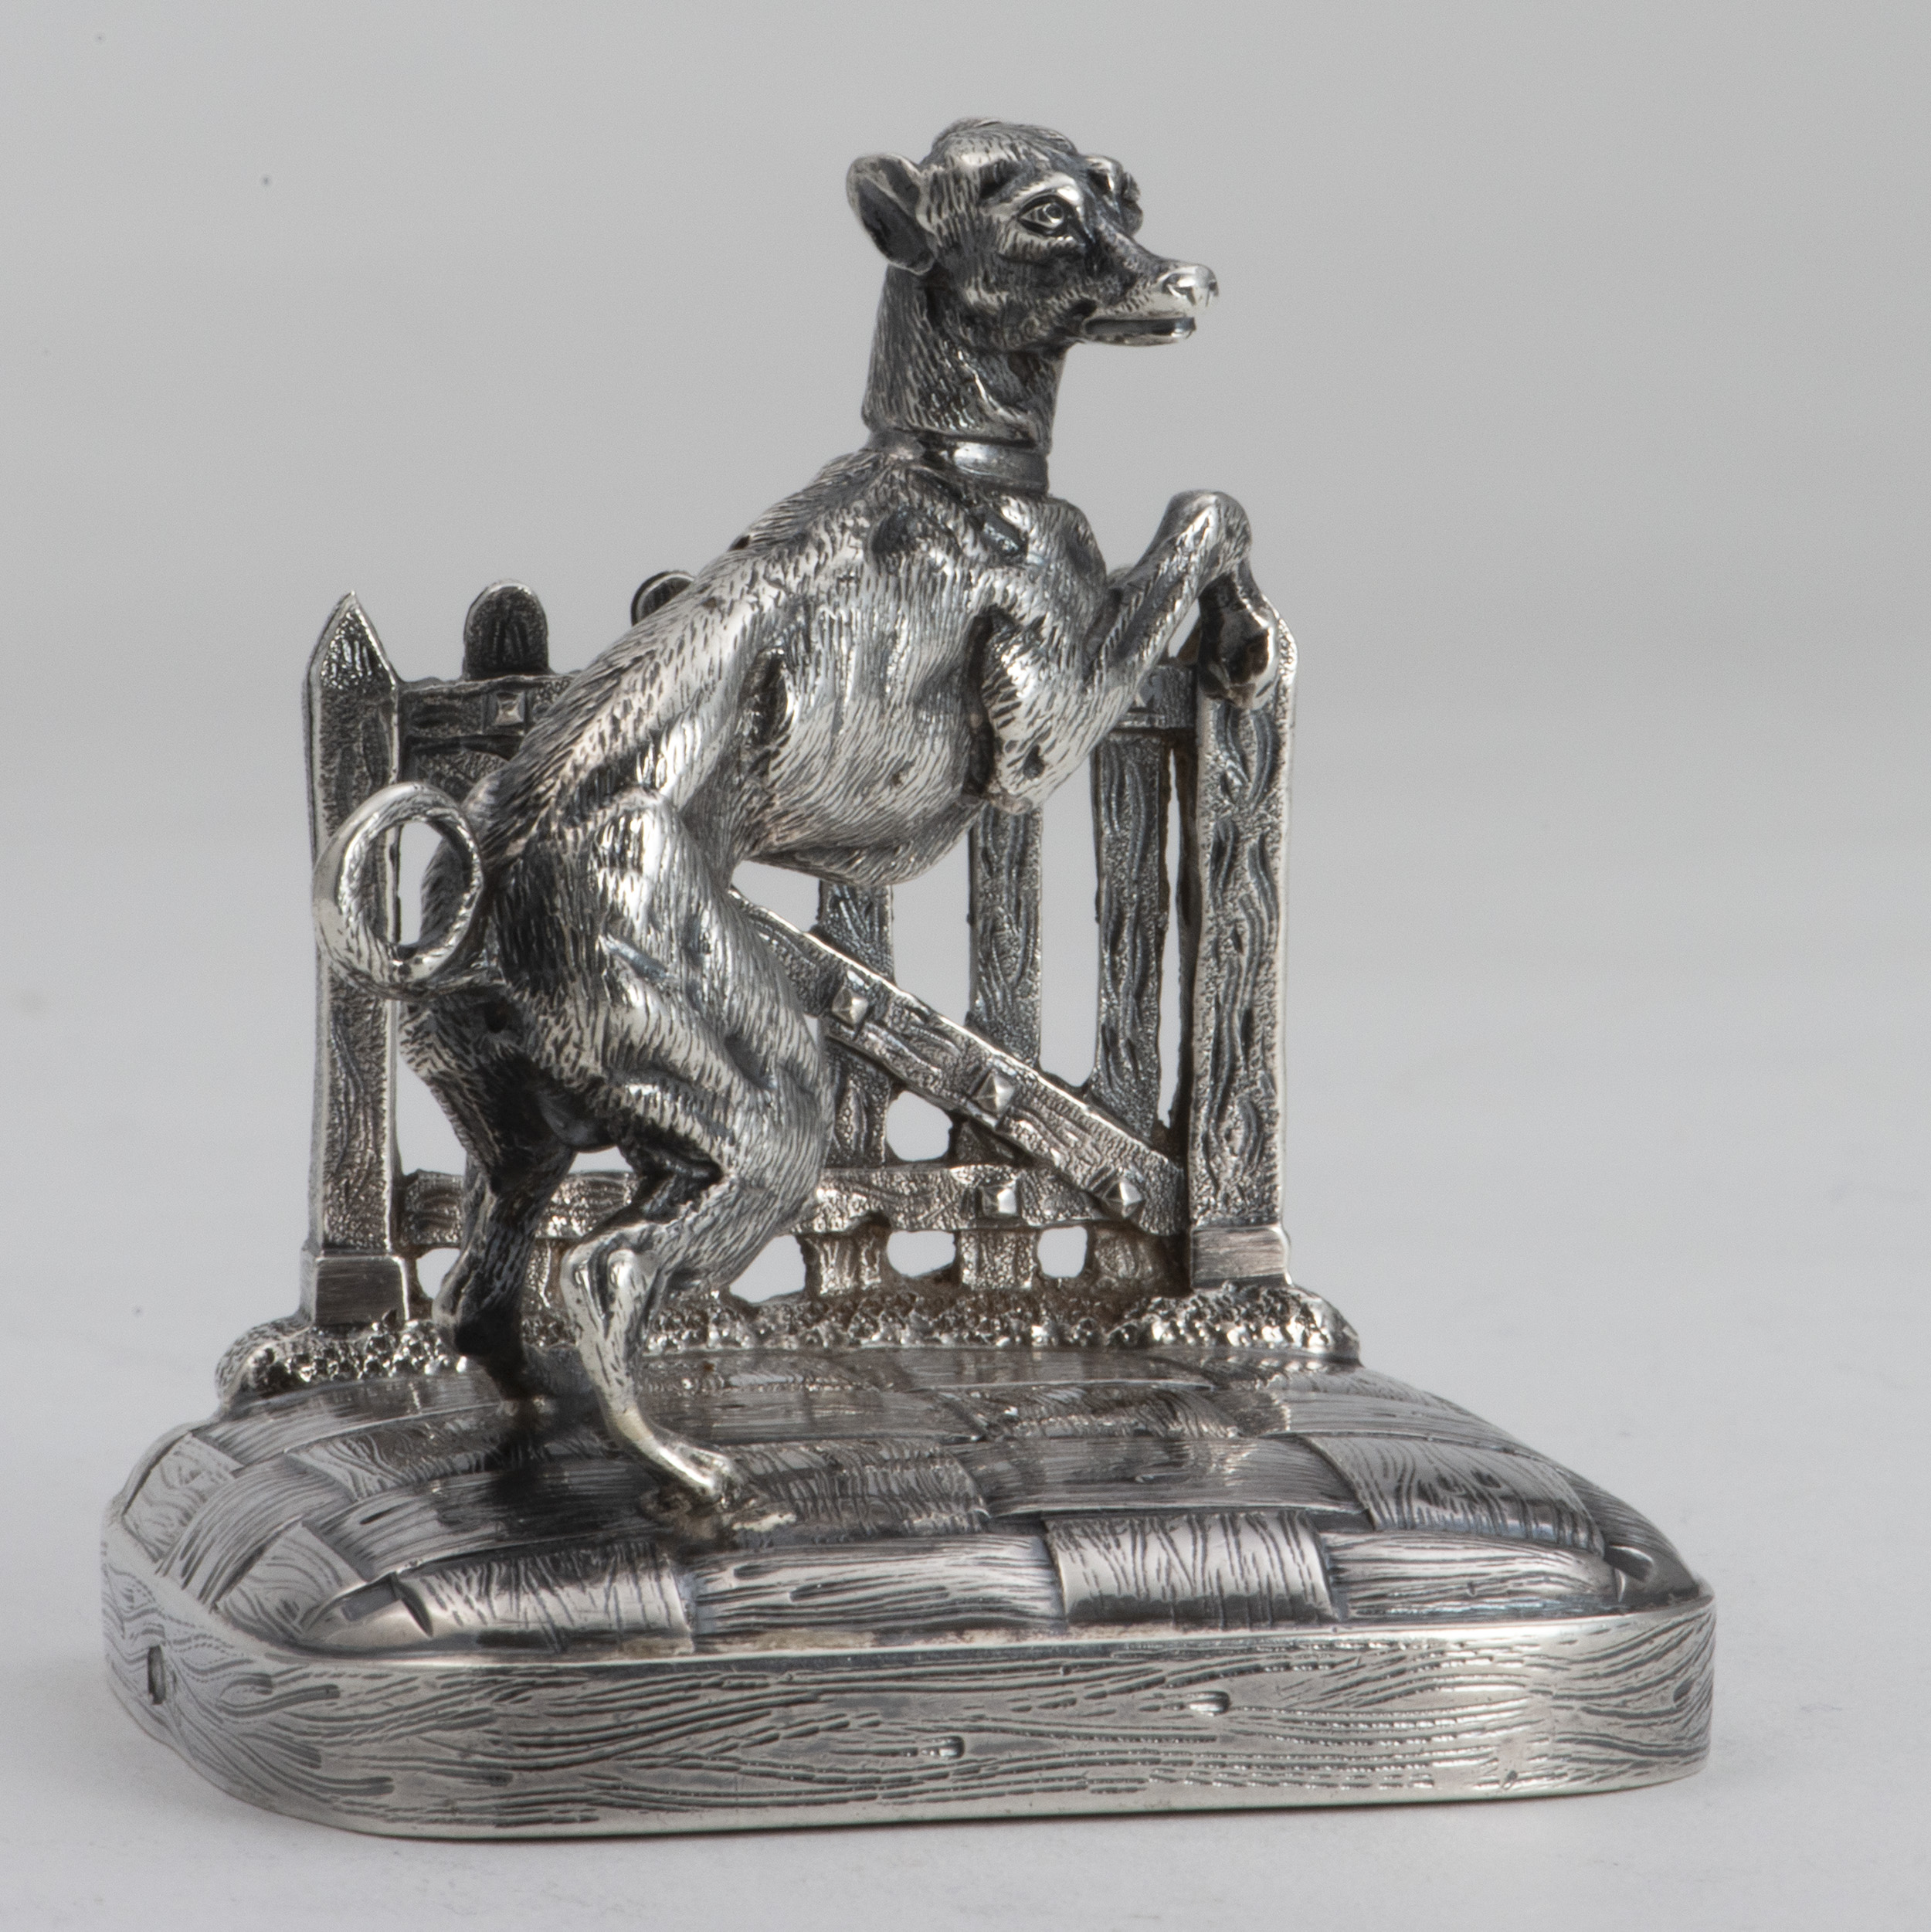 A French Silver Menu Holder In The Form Of A Whippet Dog Standing At A Gate.